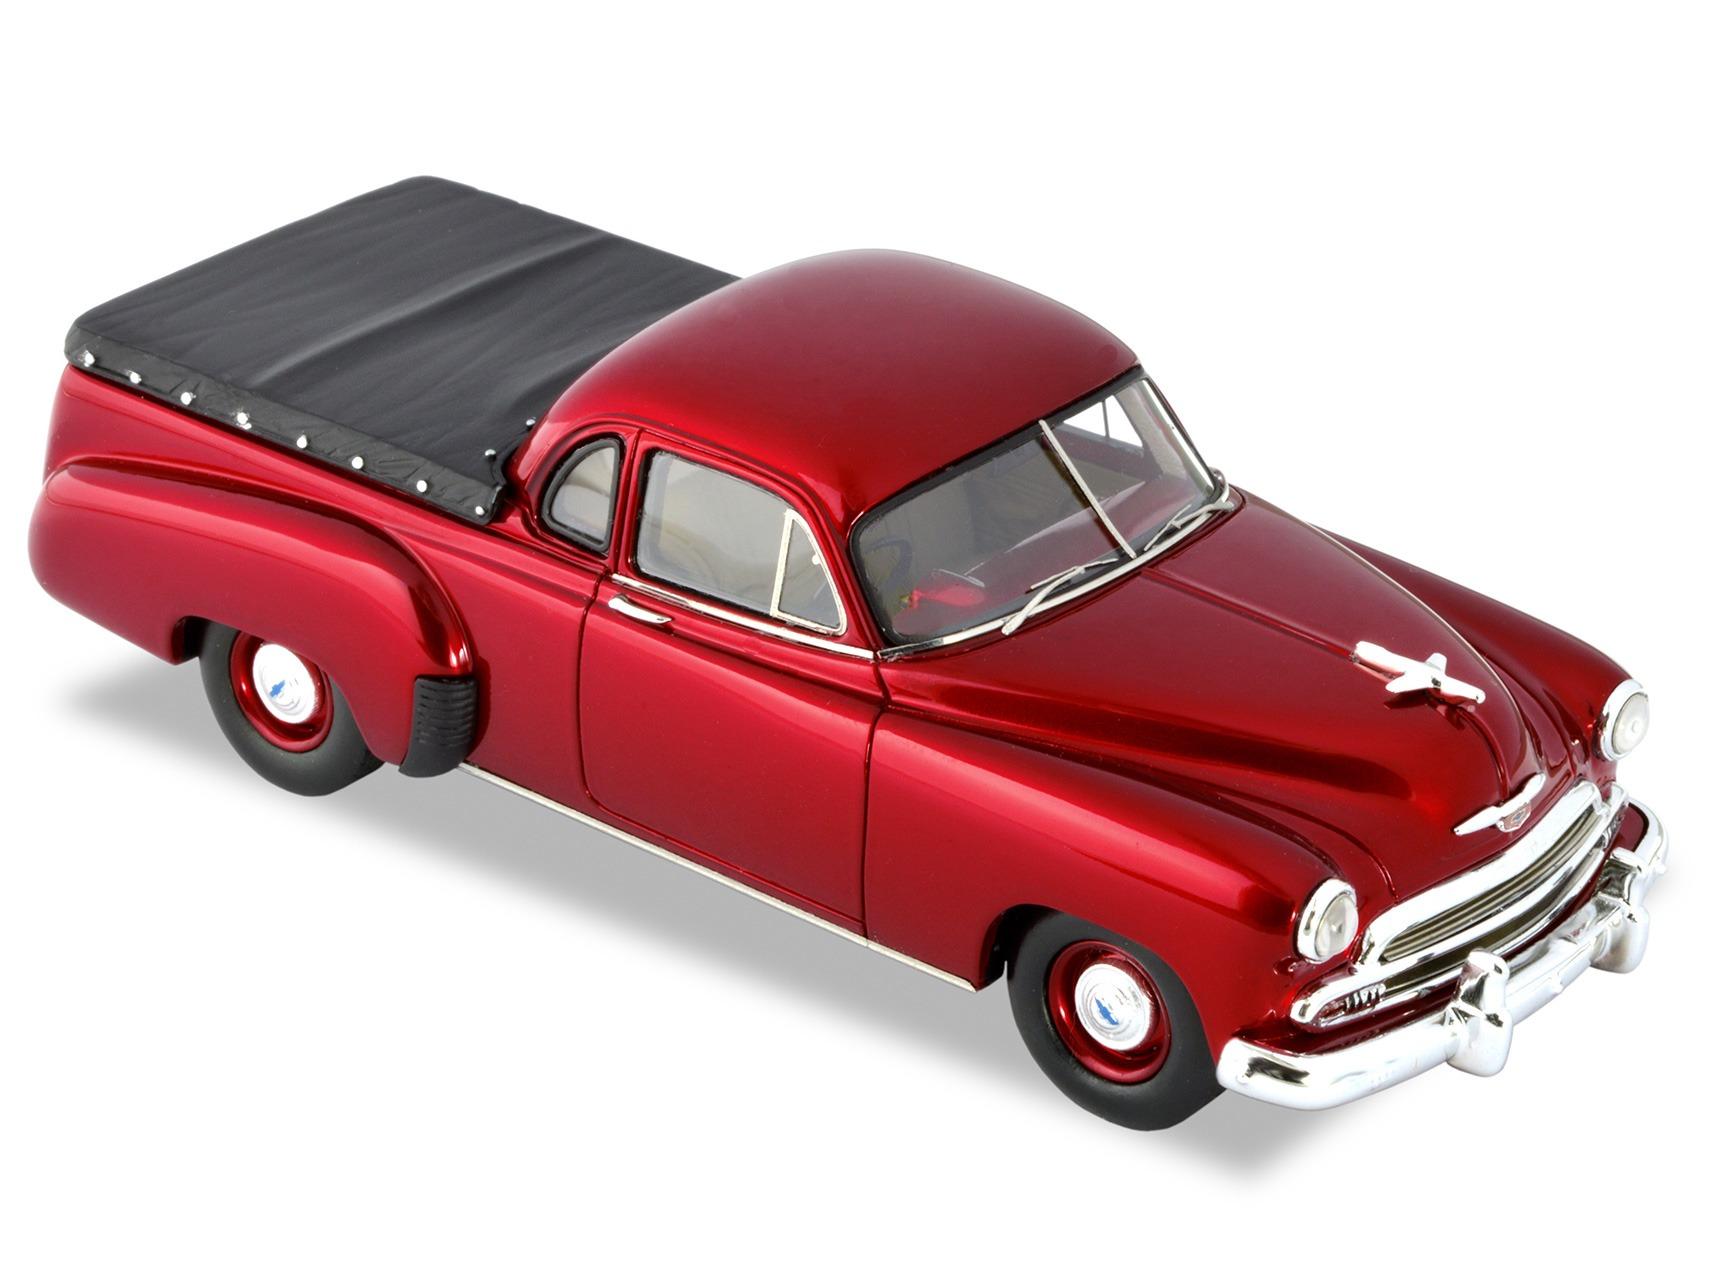 1951 Chevrolet Ute – Burgundy Red